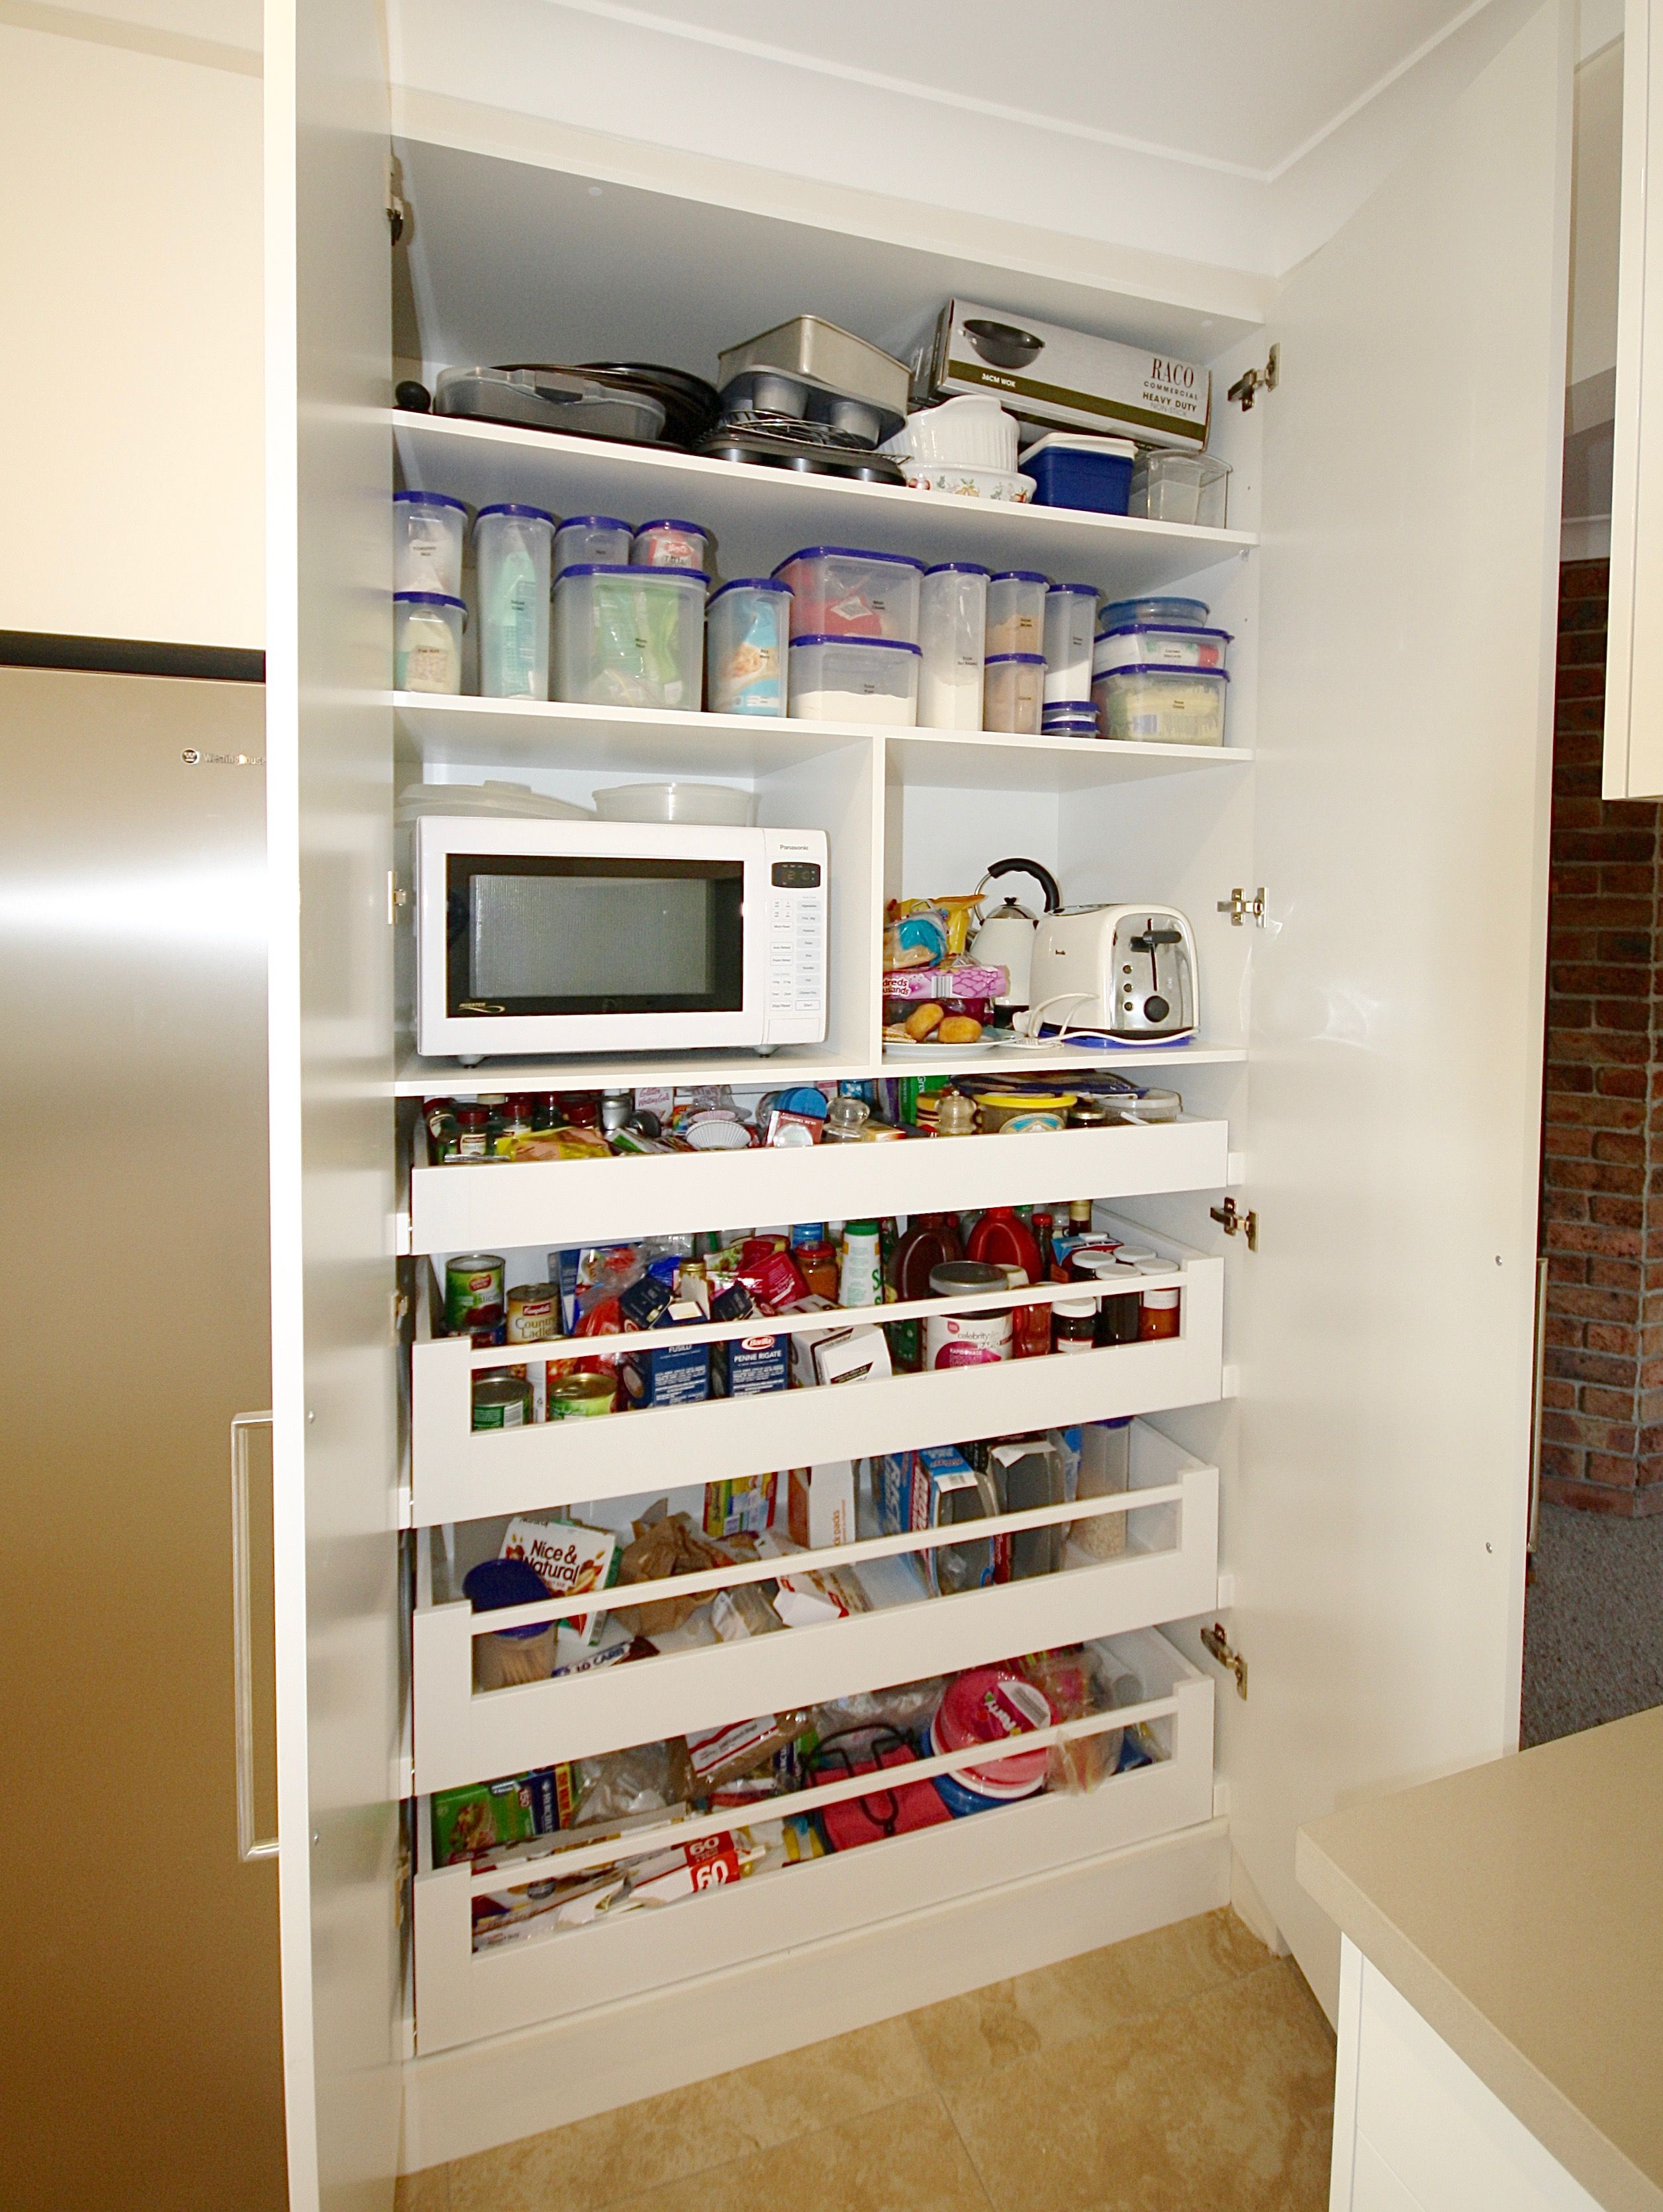 Pantry Blum Soft Closing Drawers Shaped Shelving For Easy Access To Top Section Microwave Section To Ke Pantry Layout Clever Kitchen Storage Pantry Design